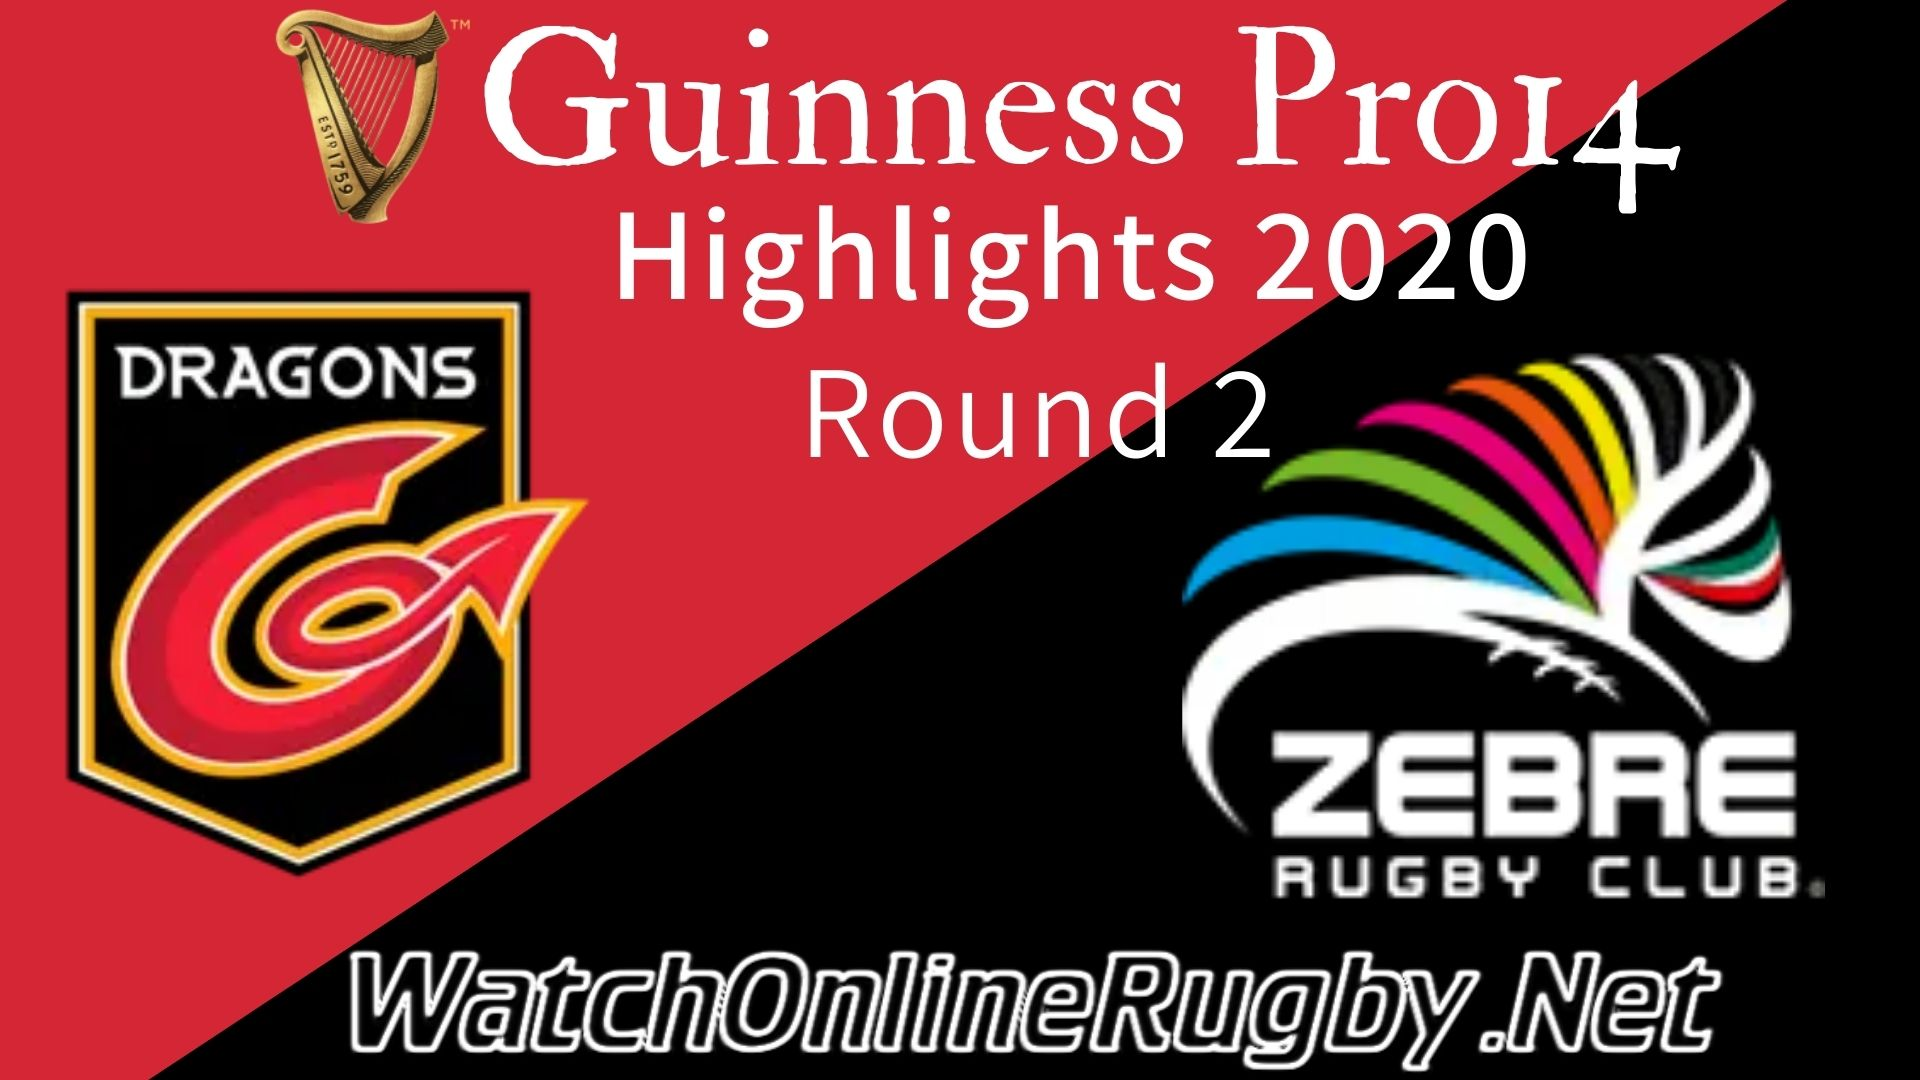 Dragons vs Zebre RD 2 Highlights 2020